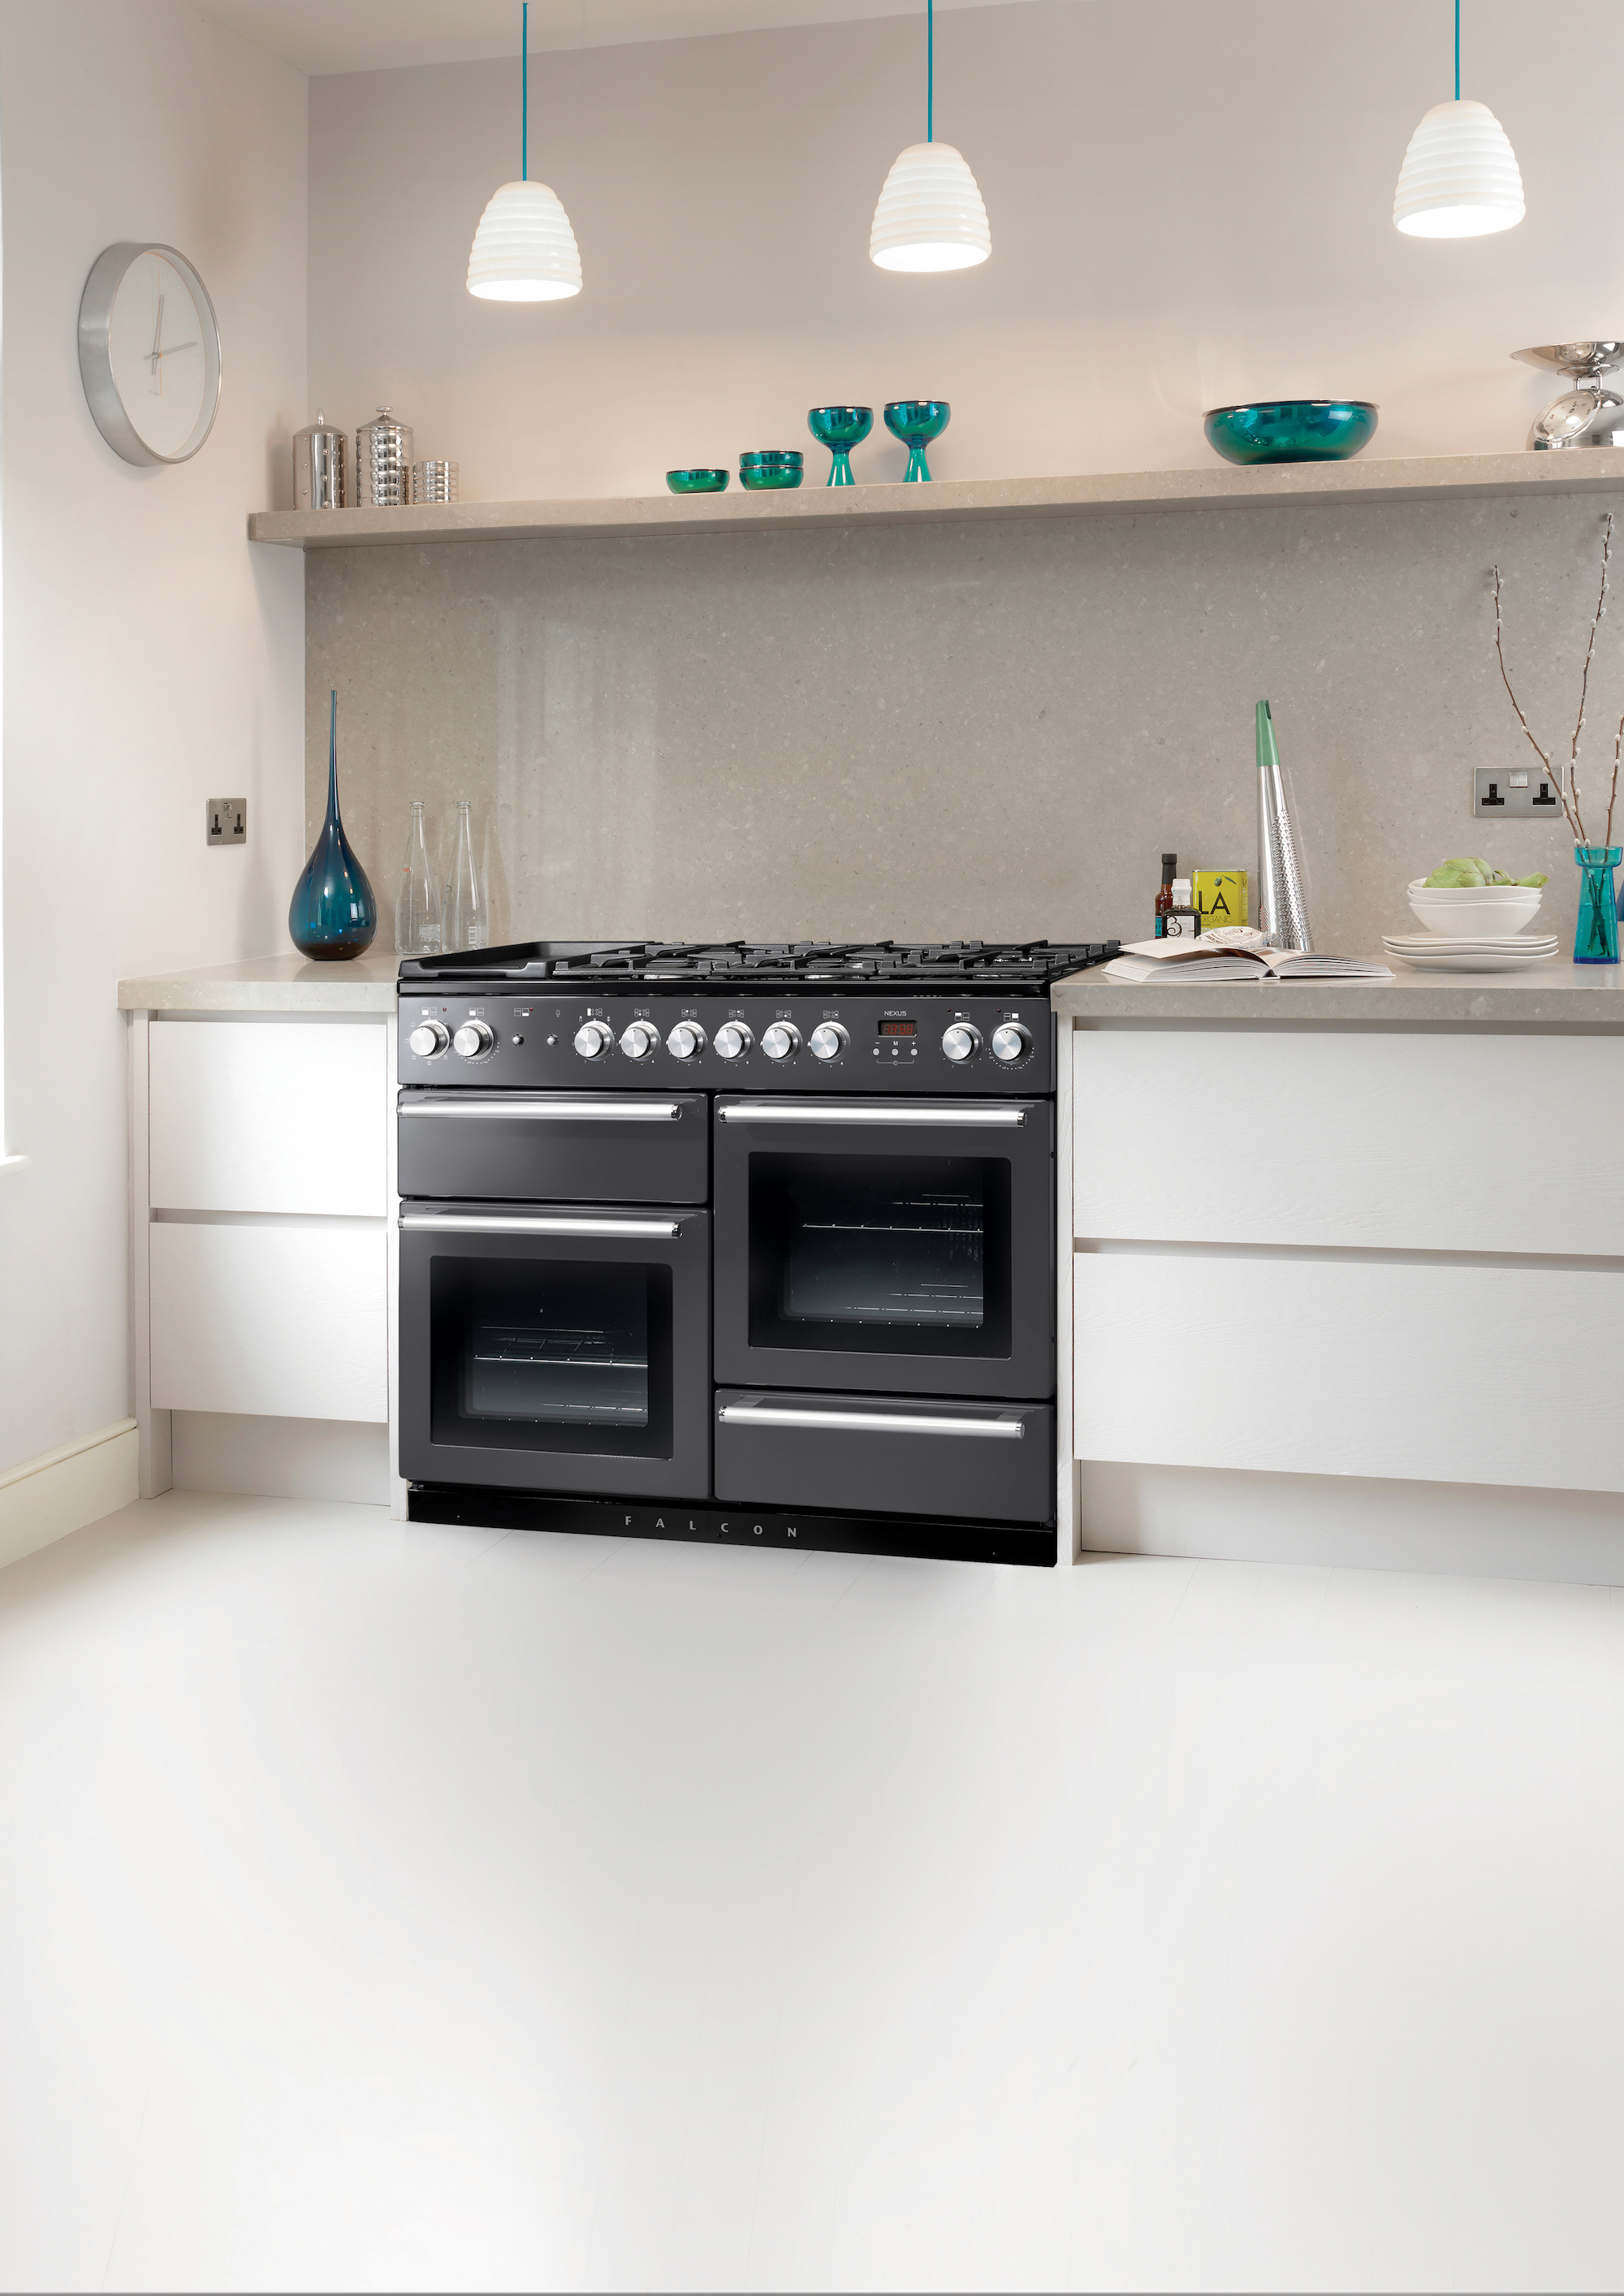 Premium Kitchen Appliances by Falcon and Liebherr Exclusively